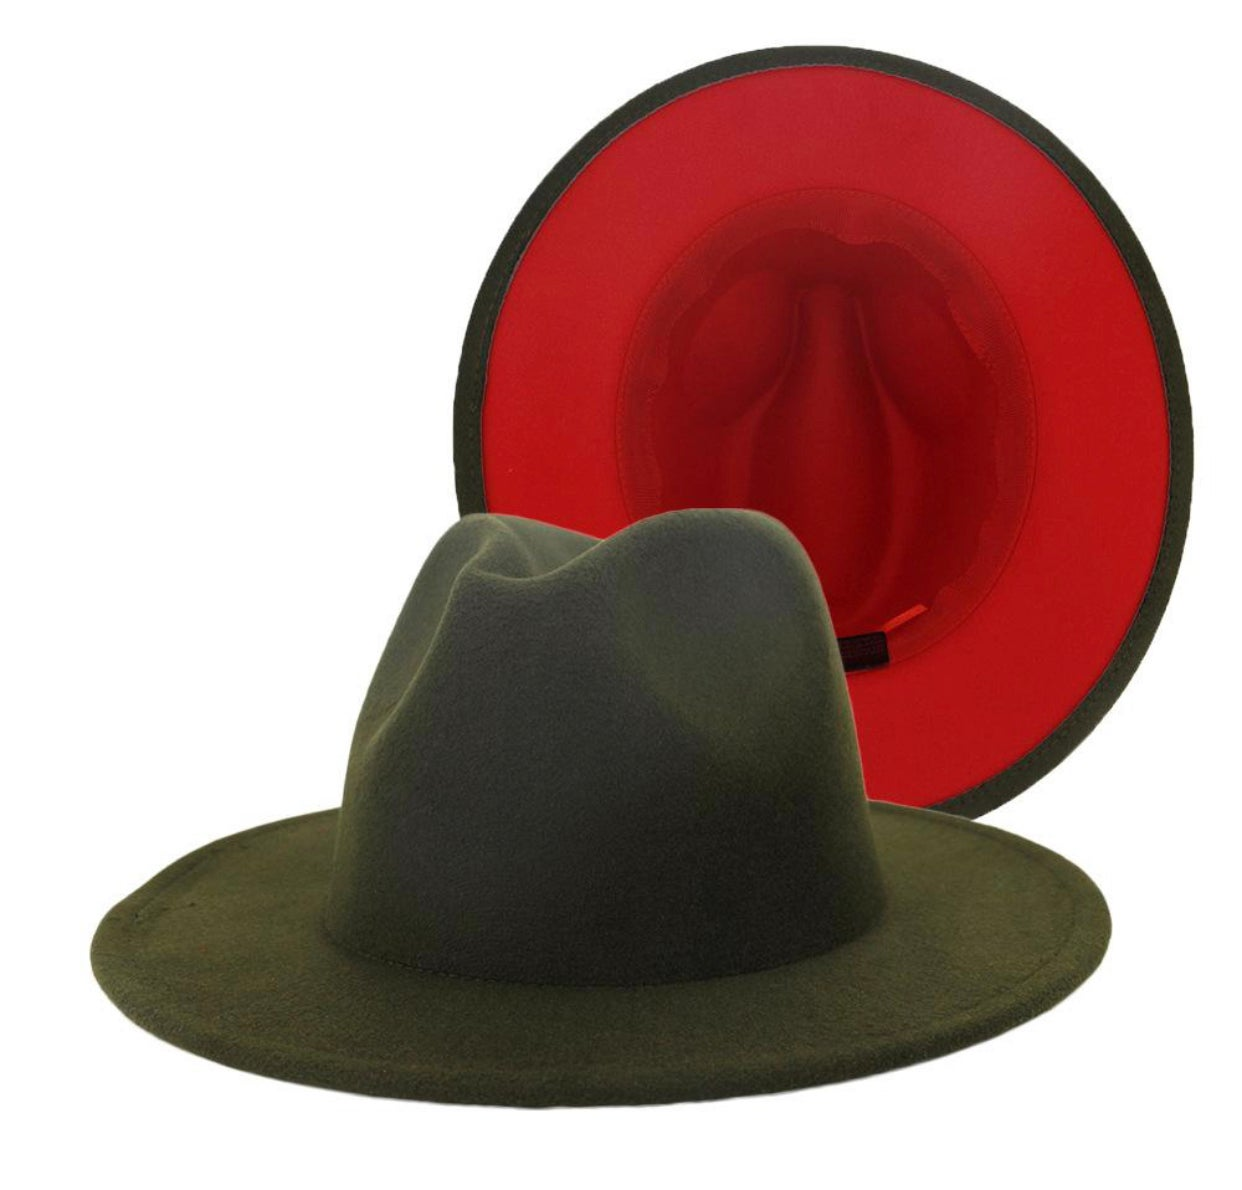 Image of Green/Red Fedora Hat (Exclusive Release)